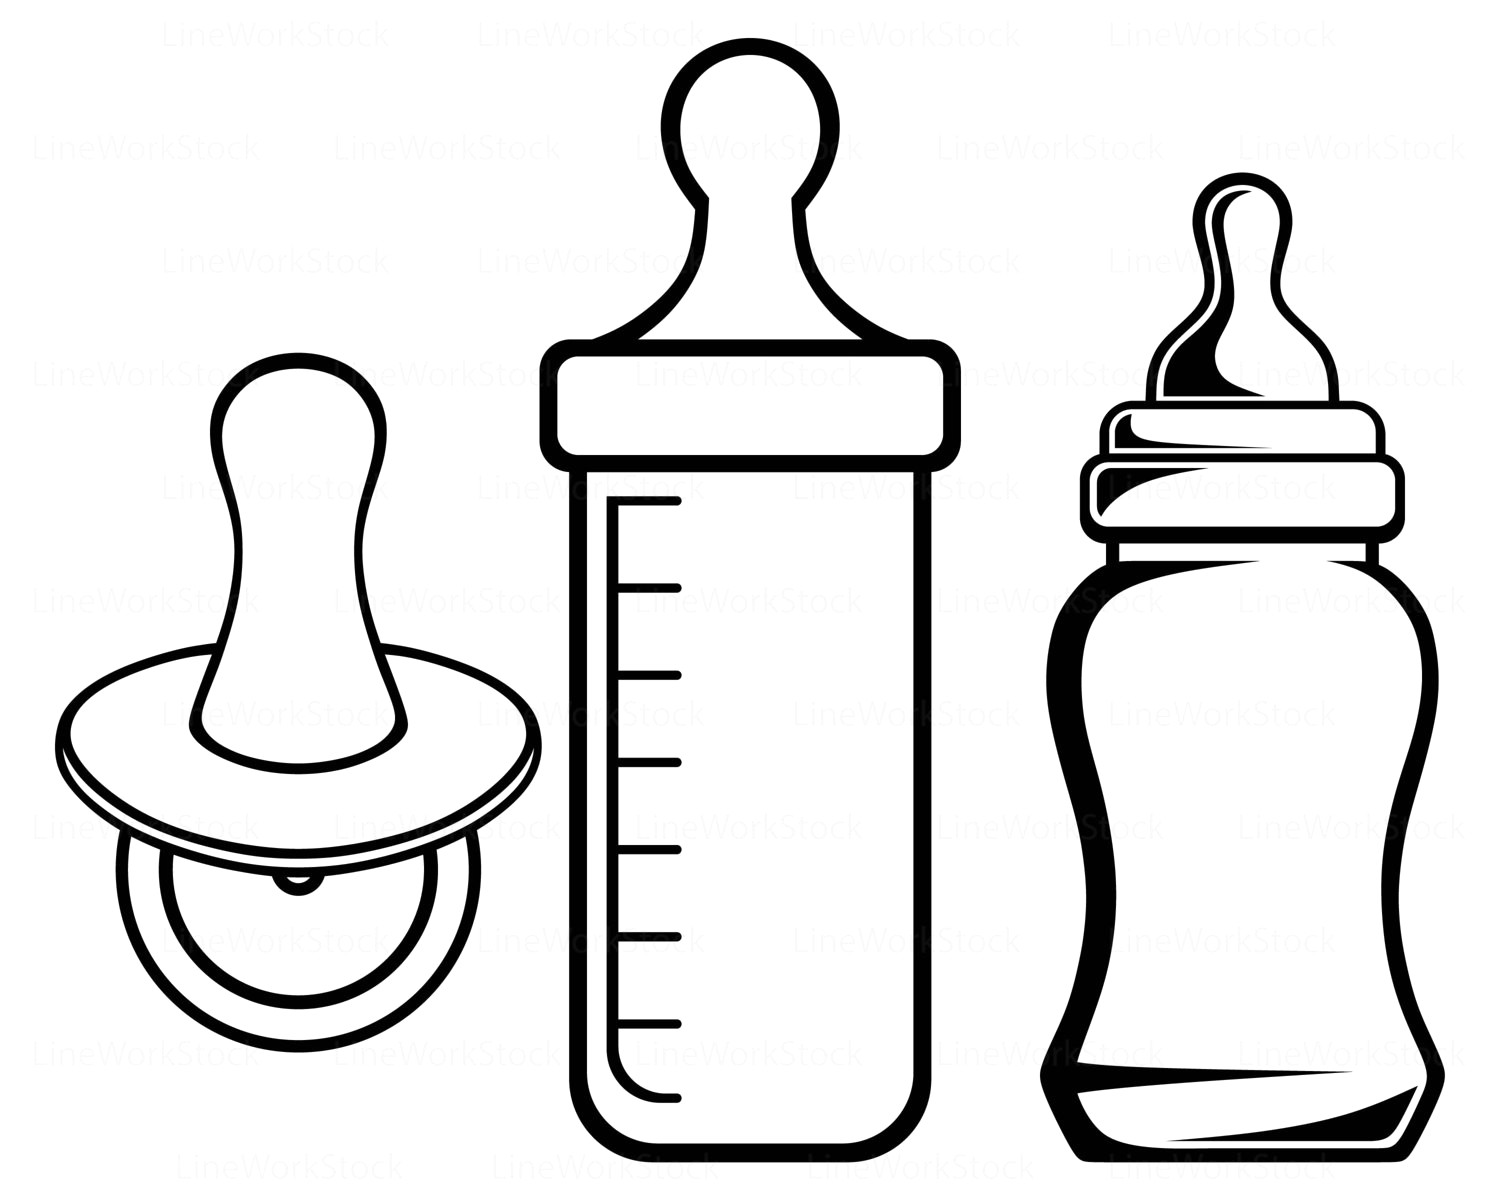 Baby bottle black and white clipart graphic library library Il fullxfull 17mkw baby bottle clipart jpg - Clipartix graphic library library